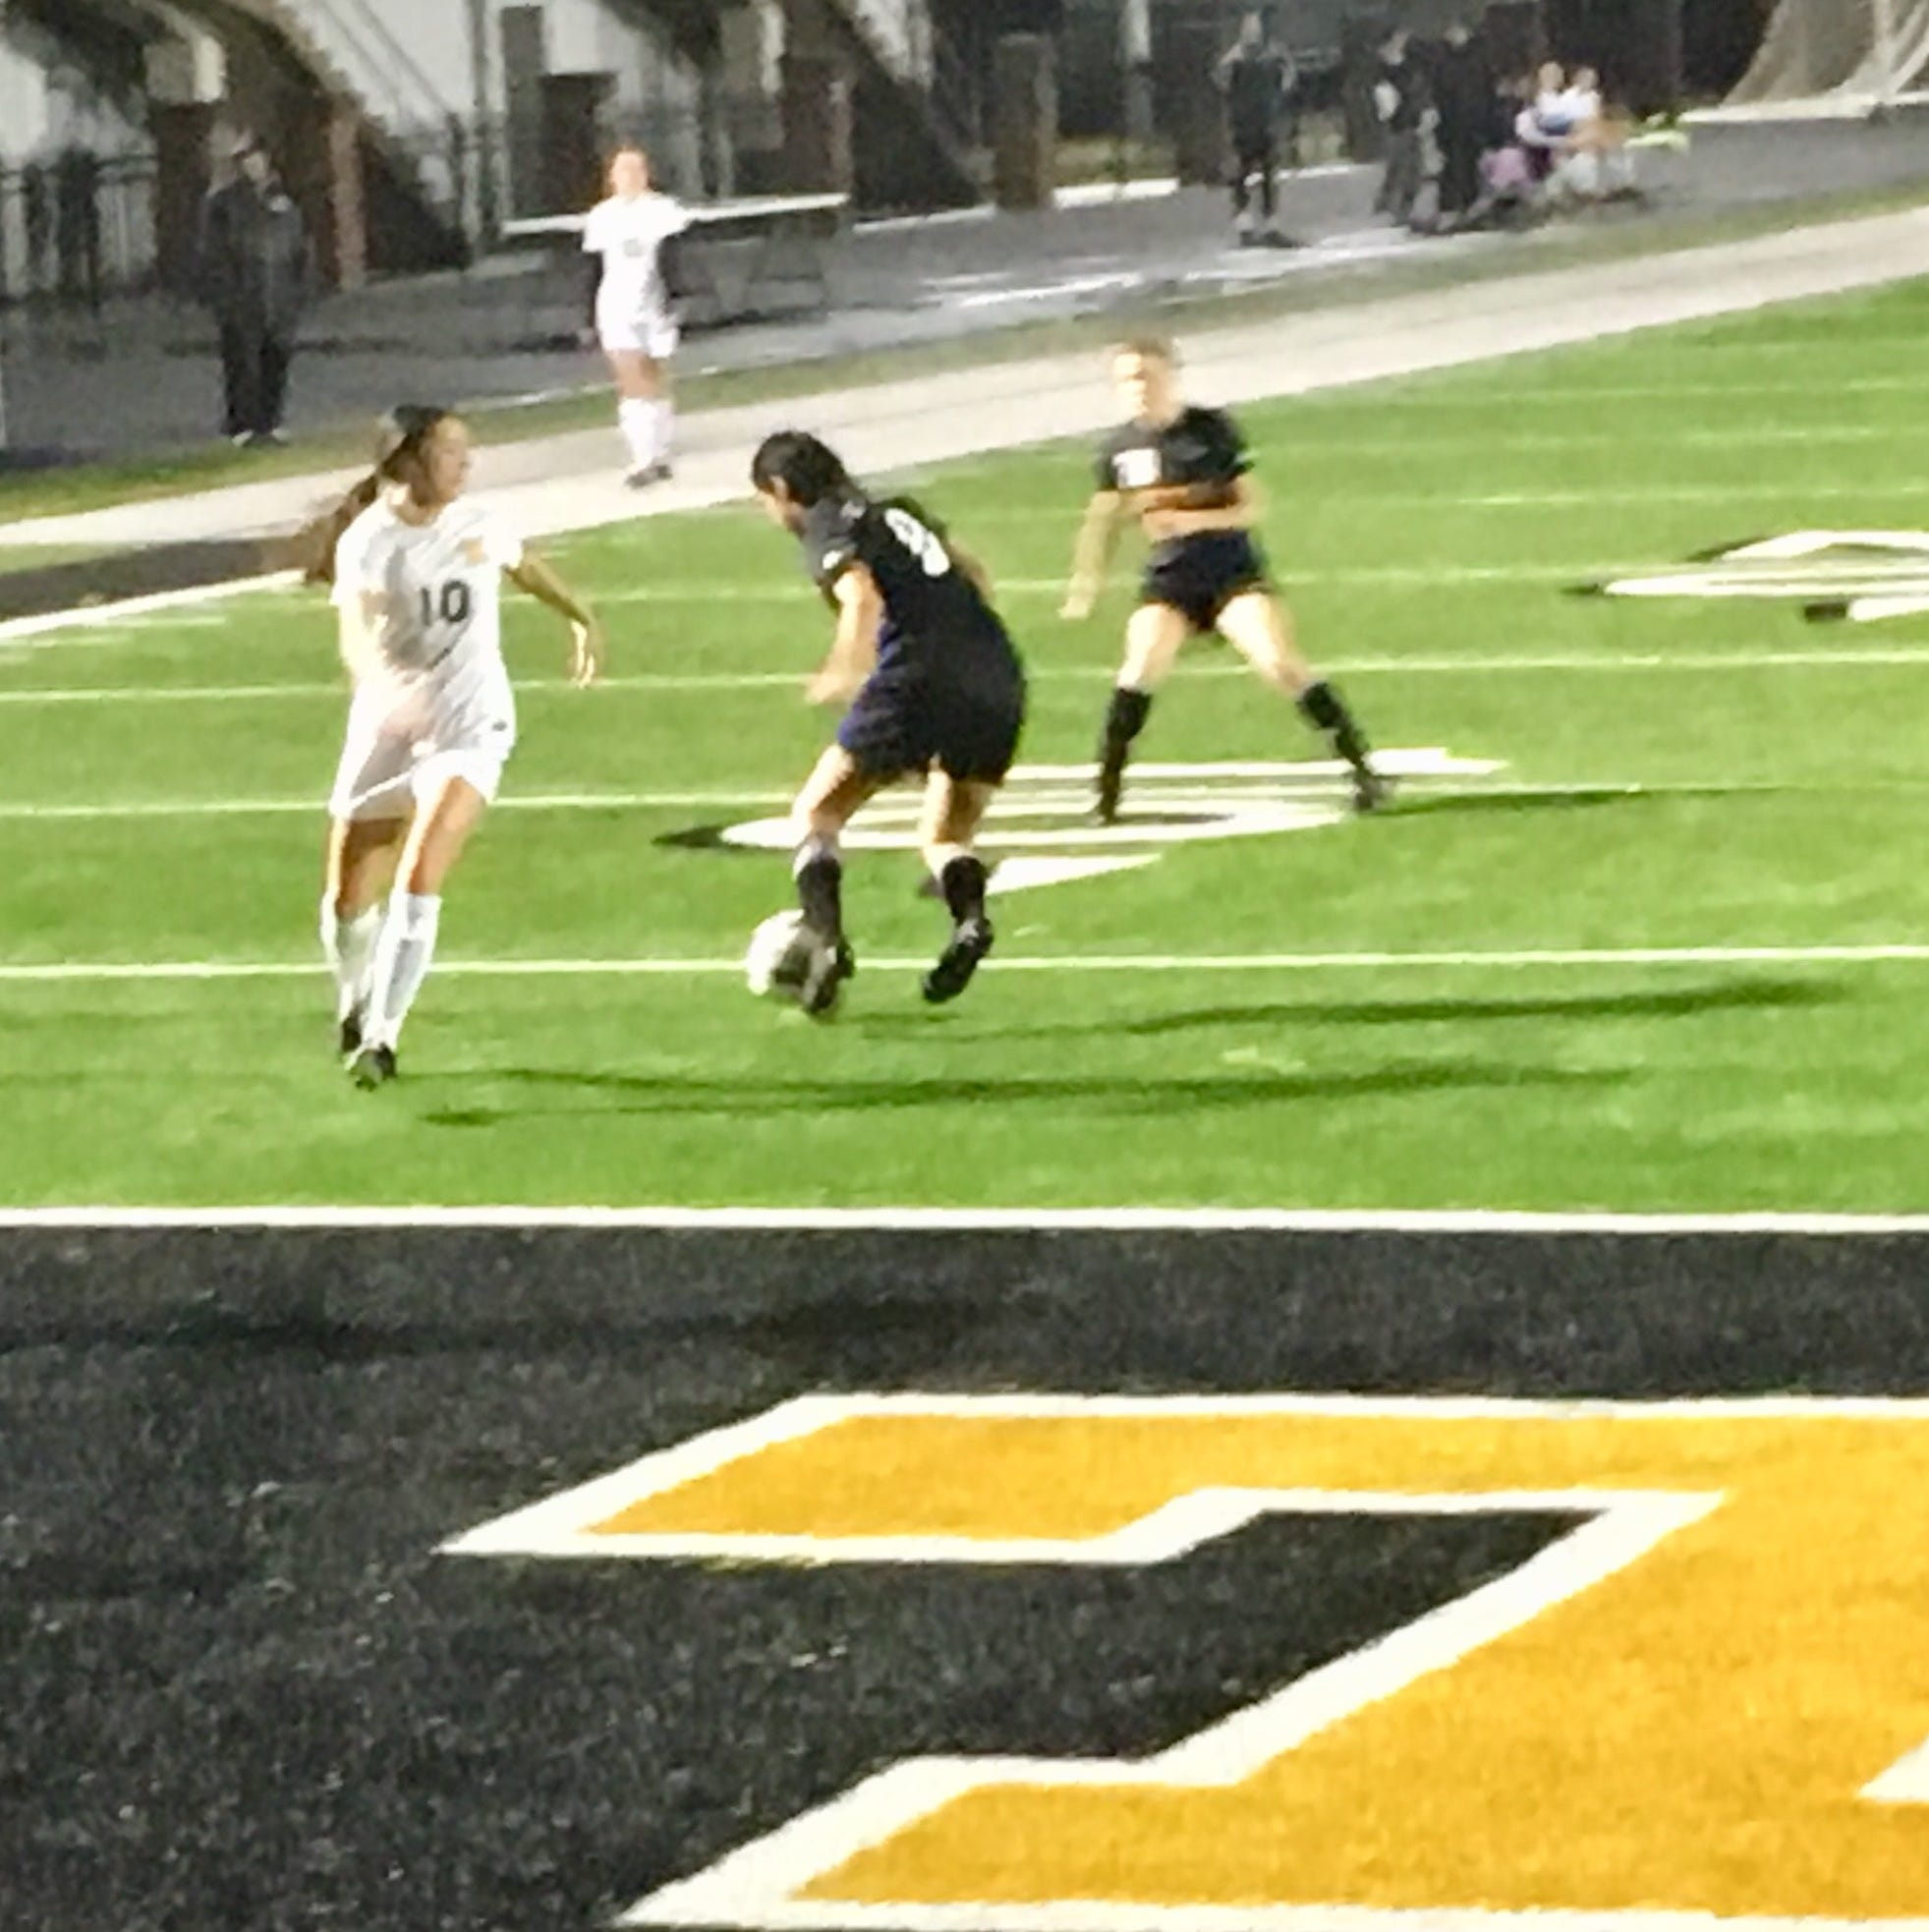 Benton defenders Lexy Ybarra (8) and Bailey Coleman (3) converge on Neville forward Caroline Hebert late in the second half of Neville's 2-0 win in the 2018 Vacanza Classico at Neville's Bill Ruple Stadium on Friday evening.